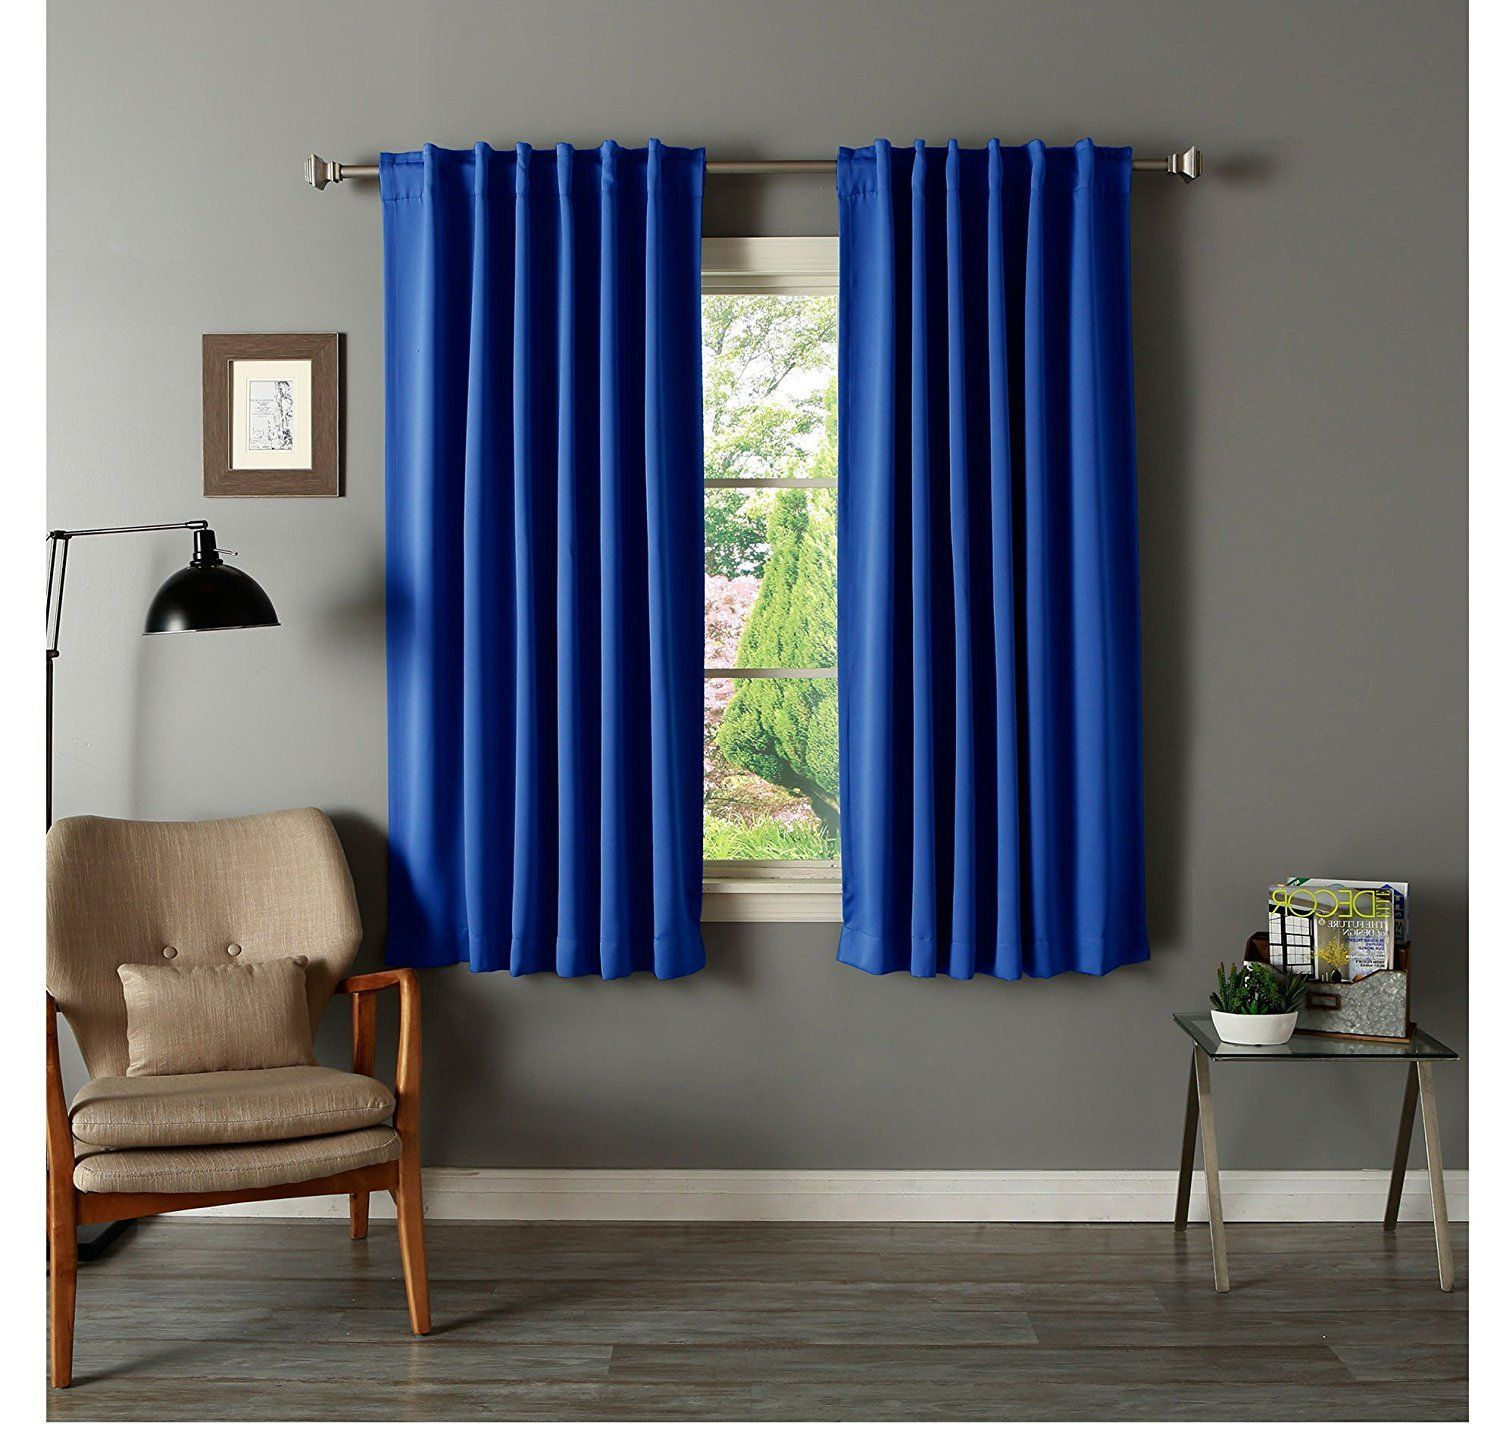 tags curtains soundproof attractive oasis noise blocking your cancelling curtain surprising awesome of home inspirational with unique create peaceful sound ideas ikea outstanding in table